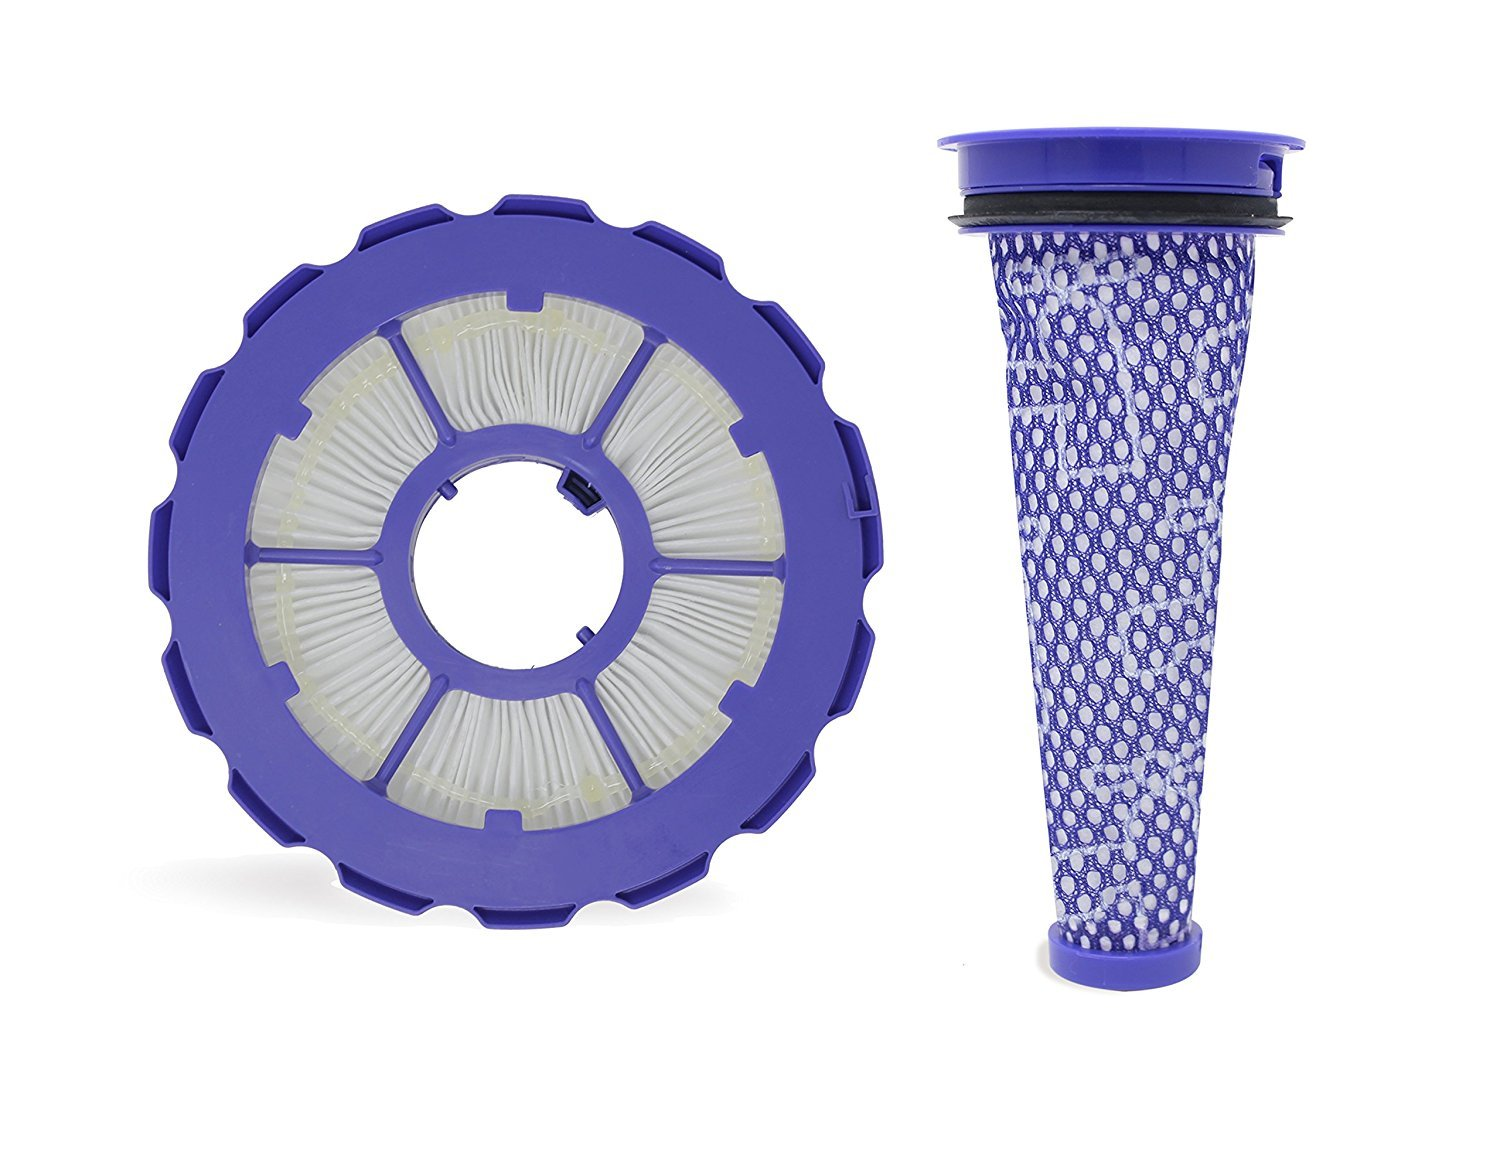 Leadaybetter Compatible Post & Pre Filter Set For Dyson DC50 Animal and Multi Floor vacuums, Part Number 965080-01 & 965081-01